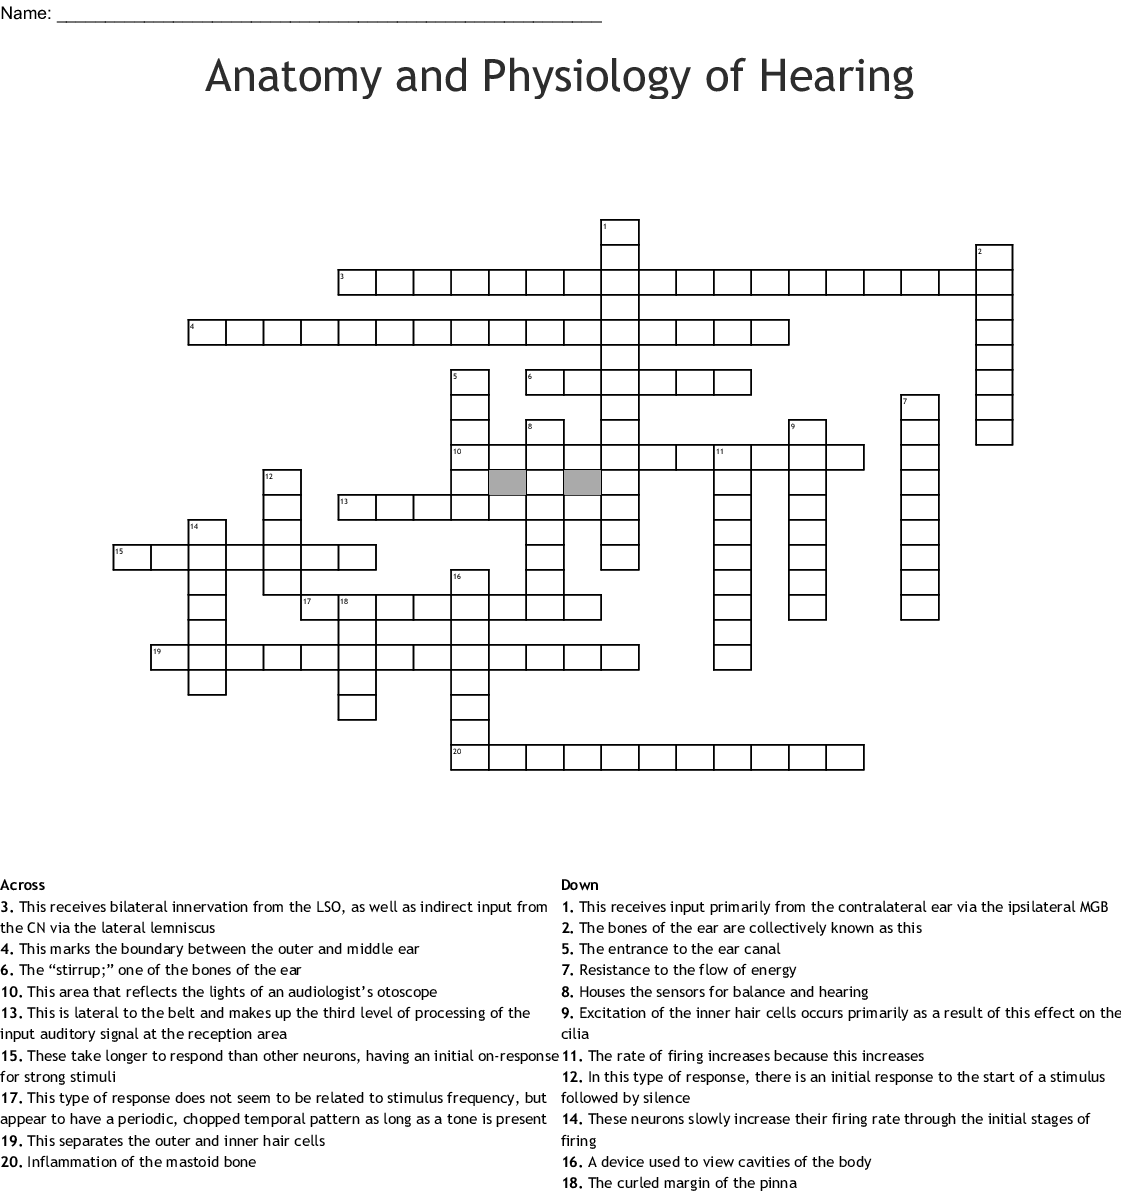 Anatomy And Physiology Of Hearing Crossword